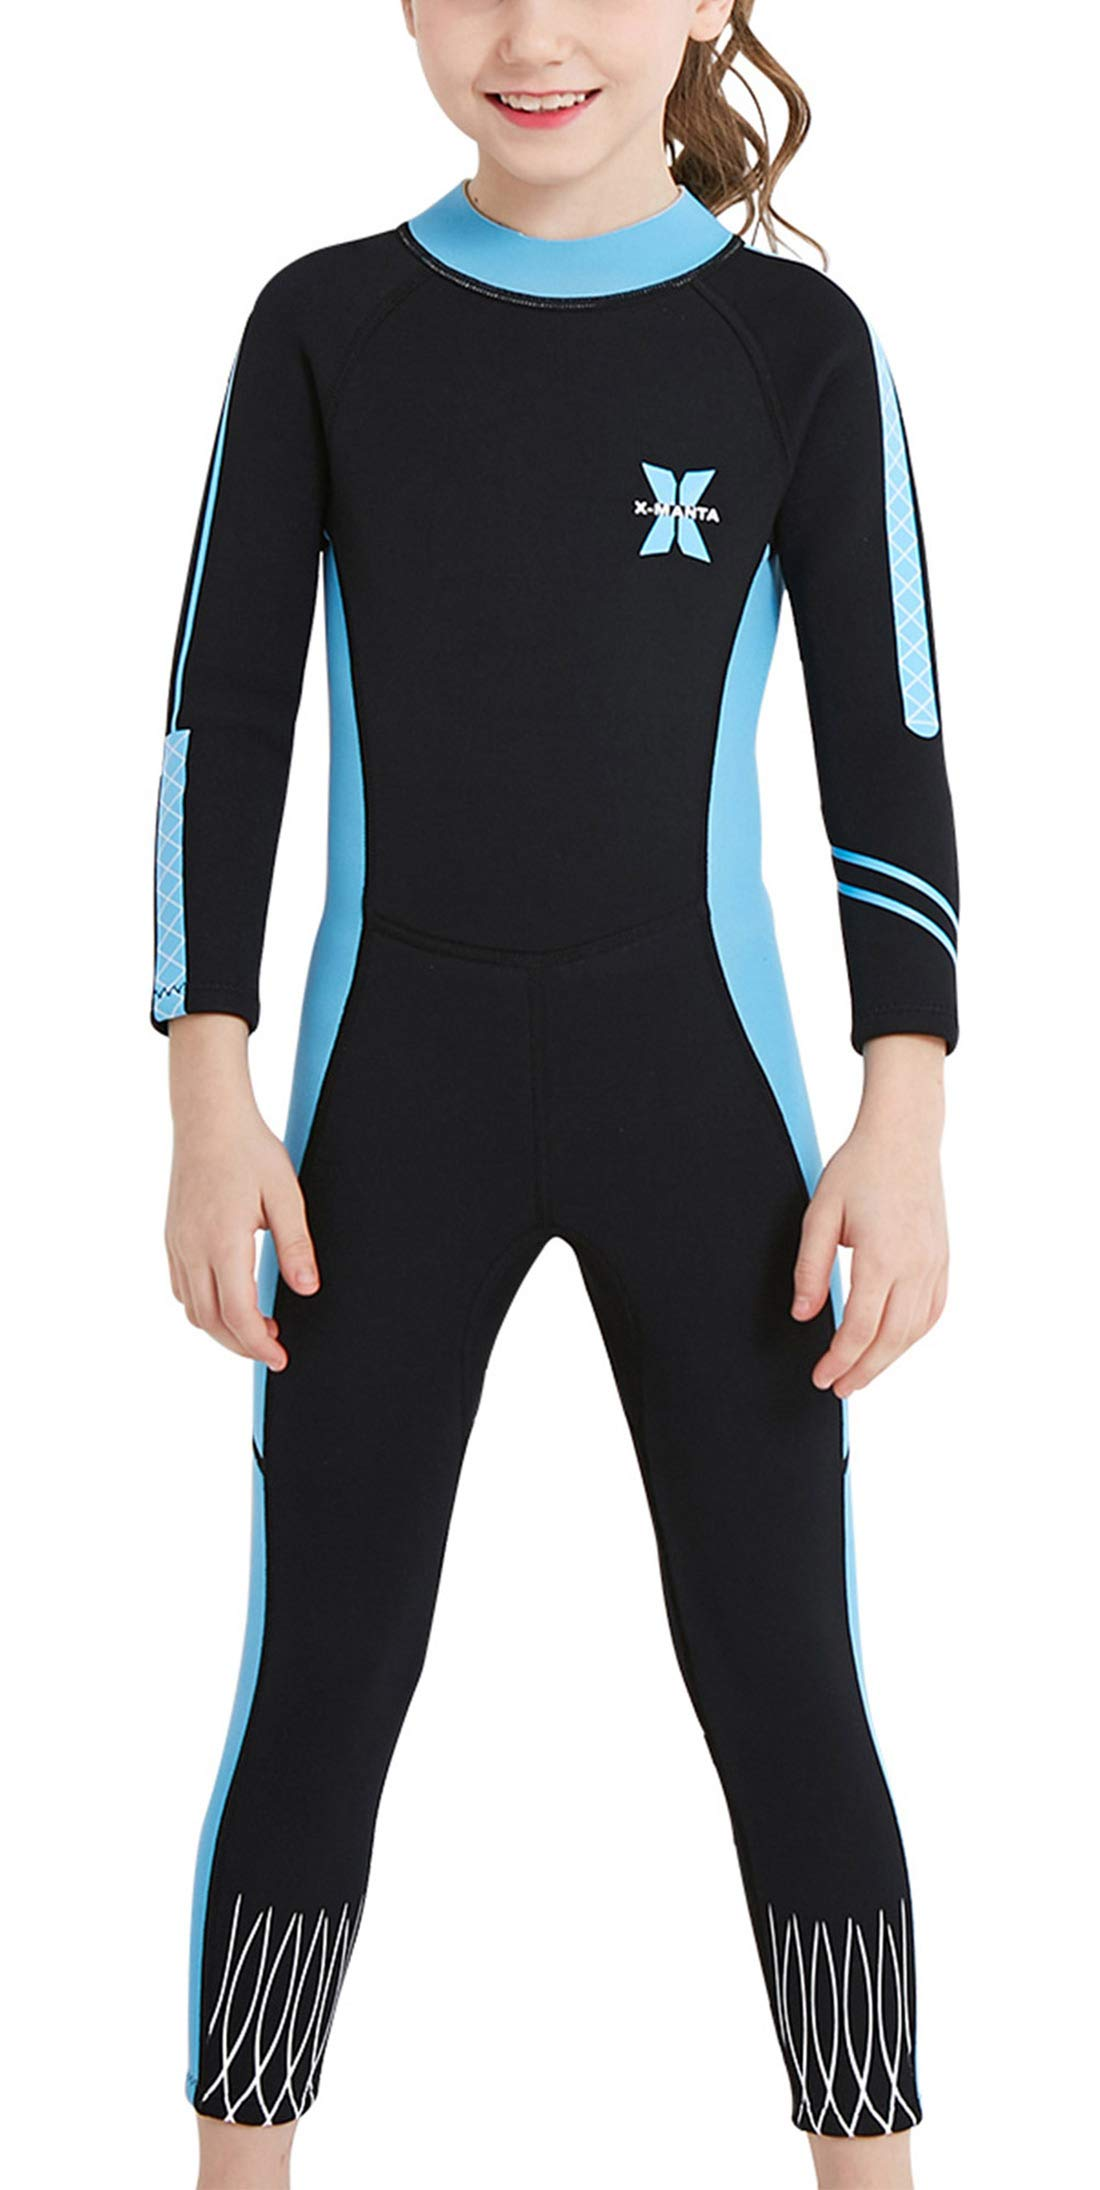 DIVE & SAIL Girls Wetsuit Warm 2.5mm Long Sleeve Swimsuit Sun UV Protection One Piece Full Suit Swimwear for Girls Black S